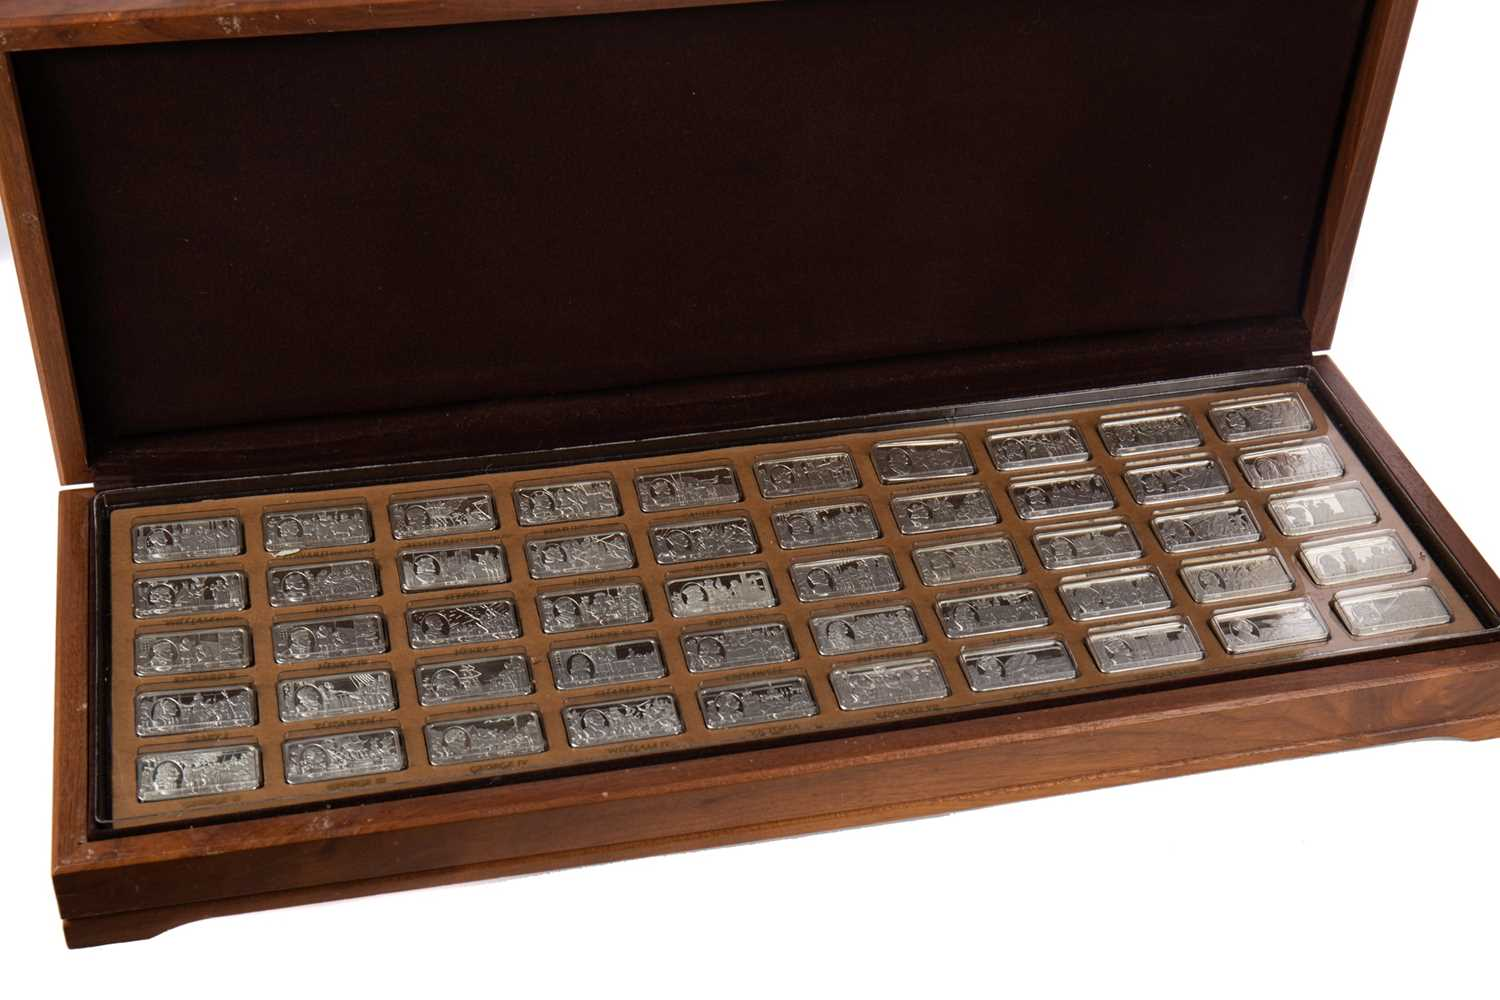 Lot 490 - A SET OF SILVER INGOTS COMMEMORATING '1,000 YEARS OF BRITISH MONARCHY'